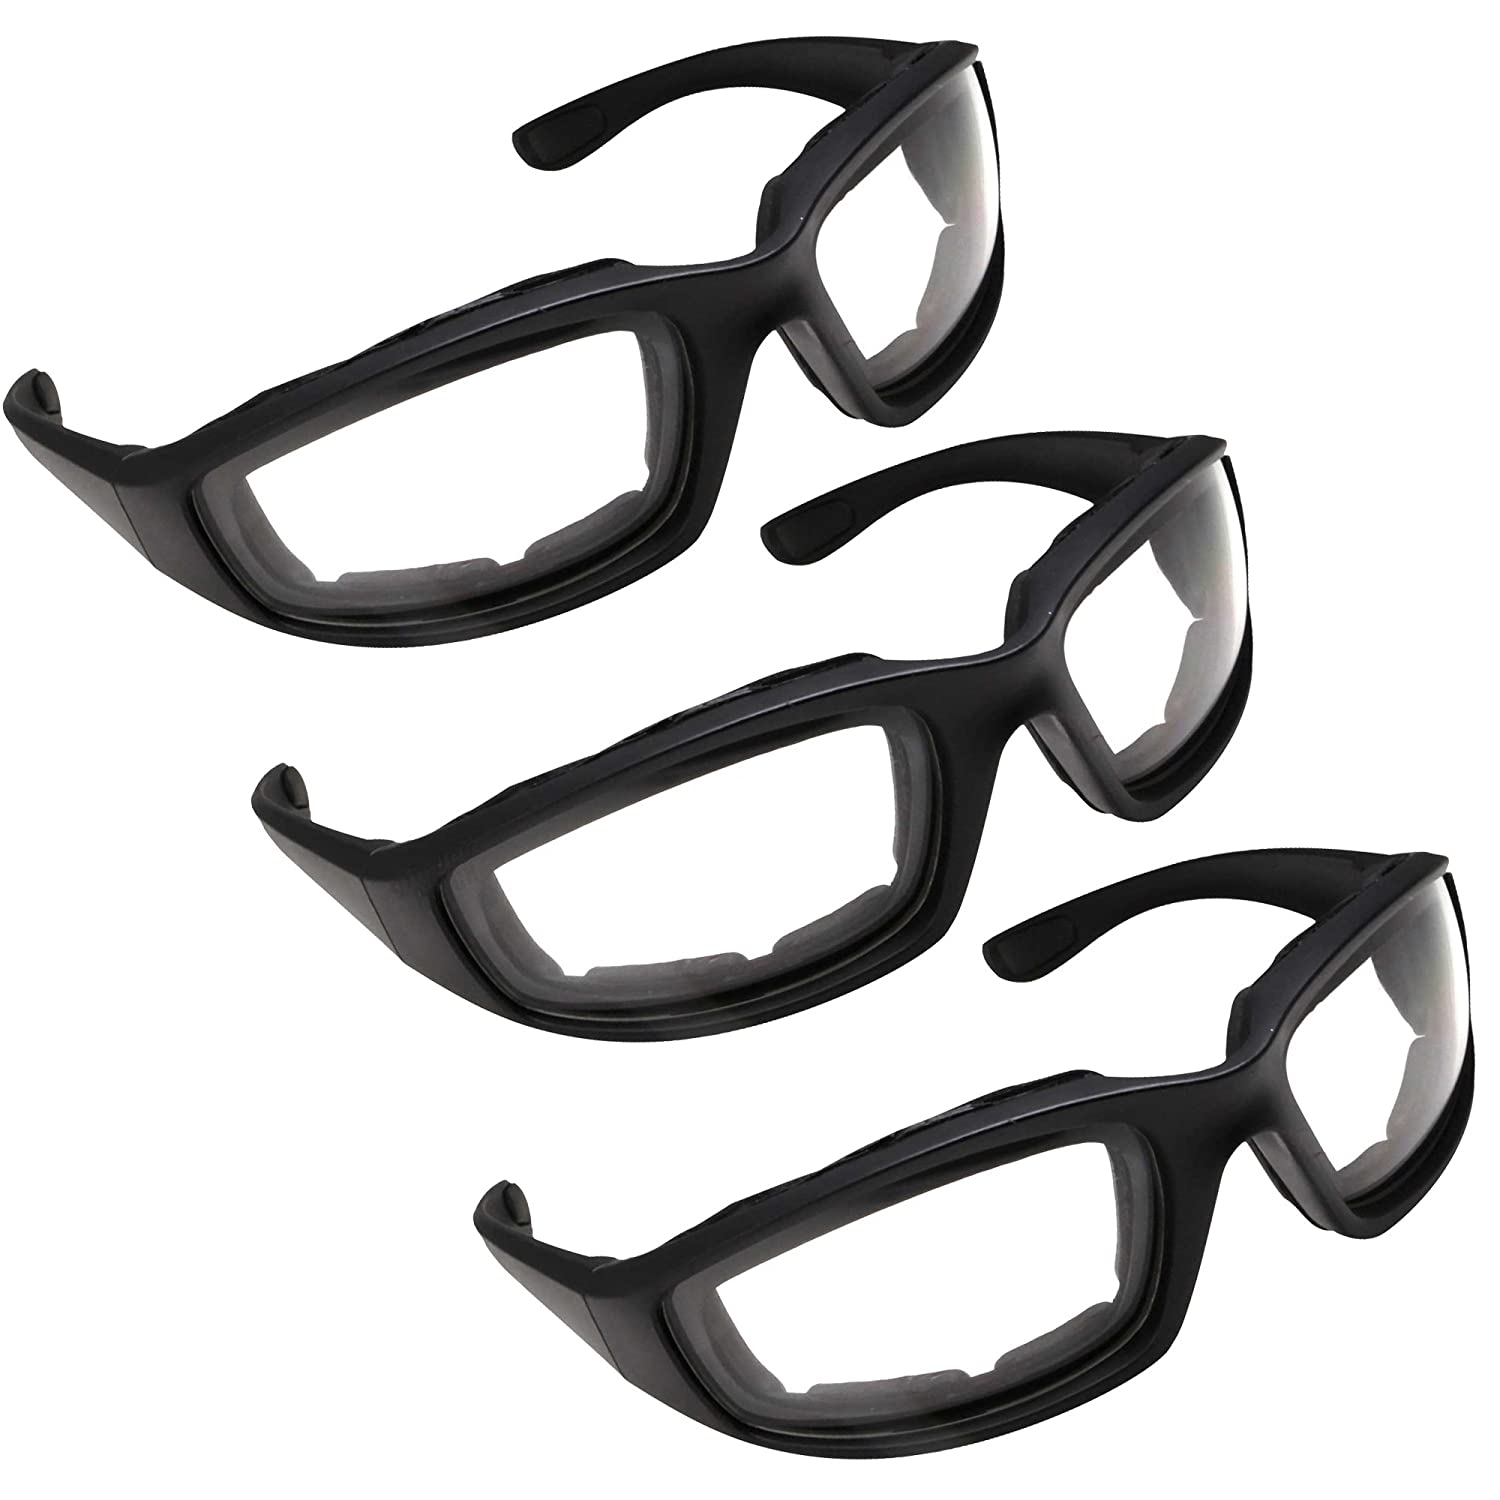 64f77142f5c Amazon.com  3 Pair Motorcycle Riding Glasses for Half Helmet 3 Pairs Clear  Glasses  Automotive